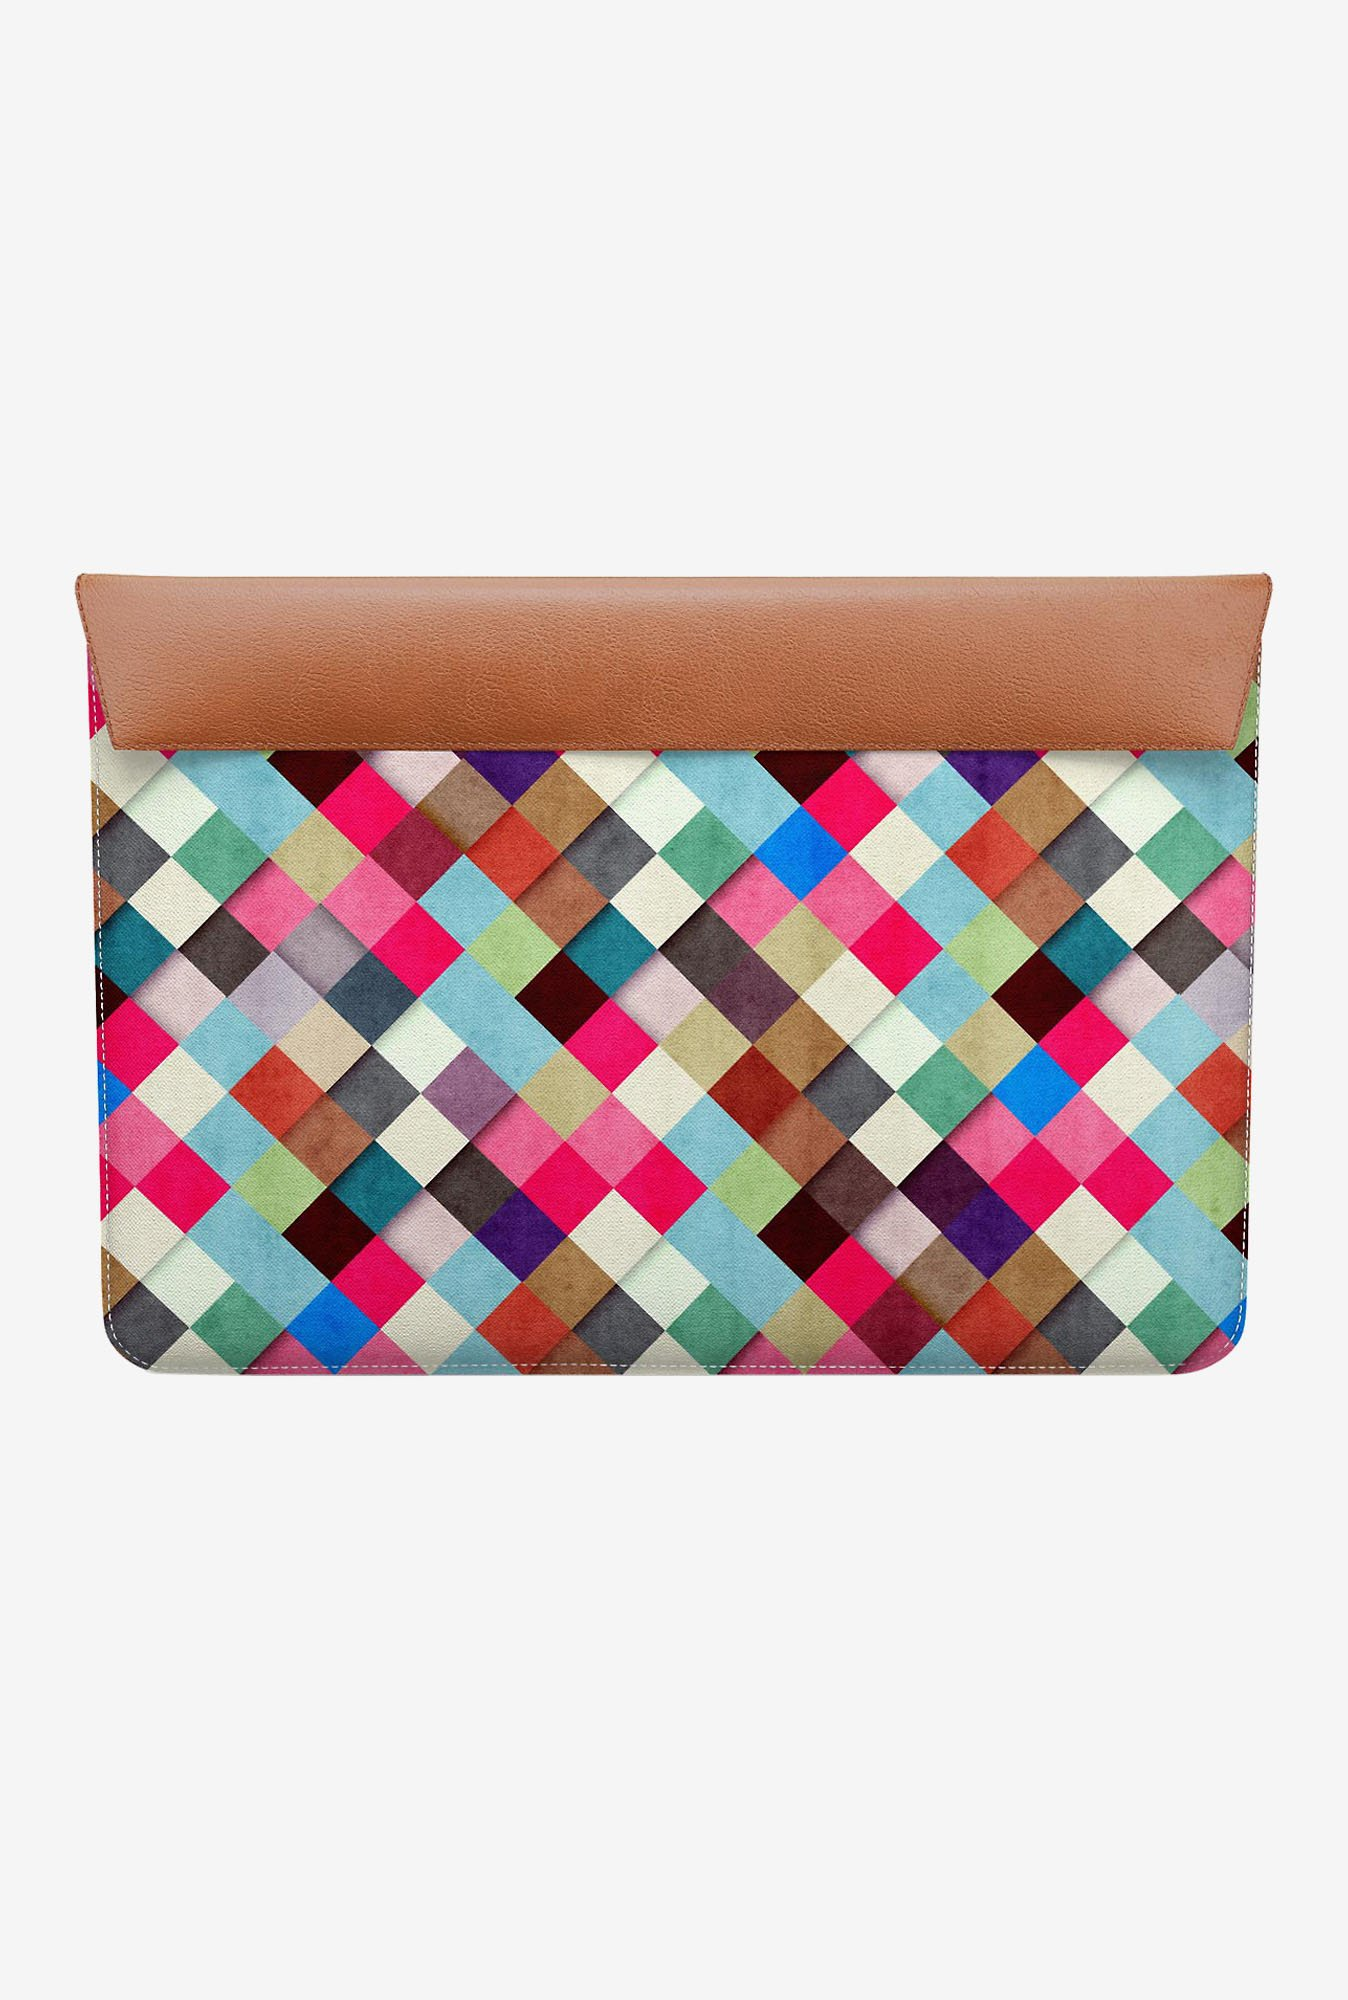 DailyObjects UbriK checker MacBook Pro 15 Envelope Sleeve